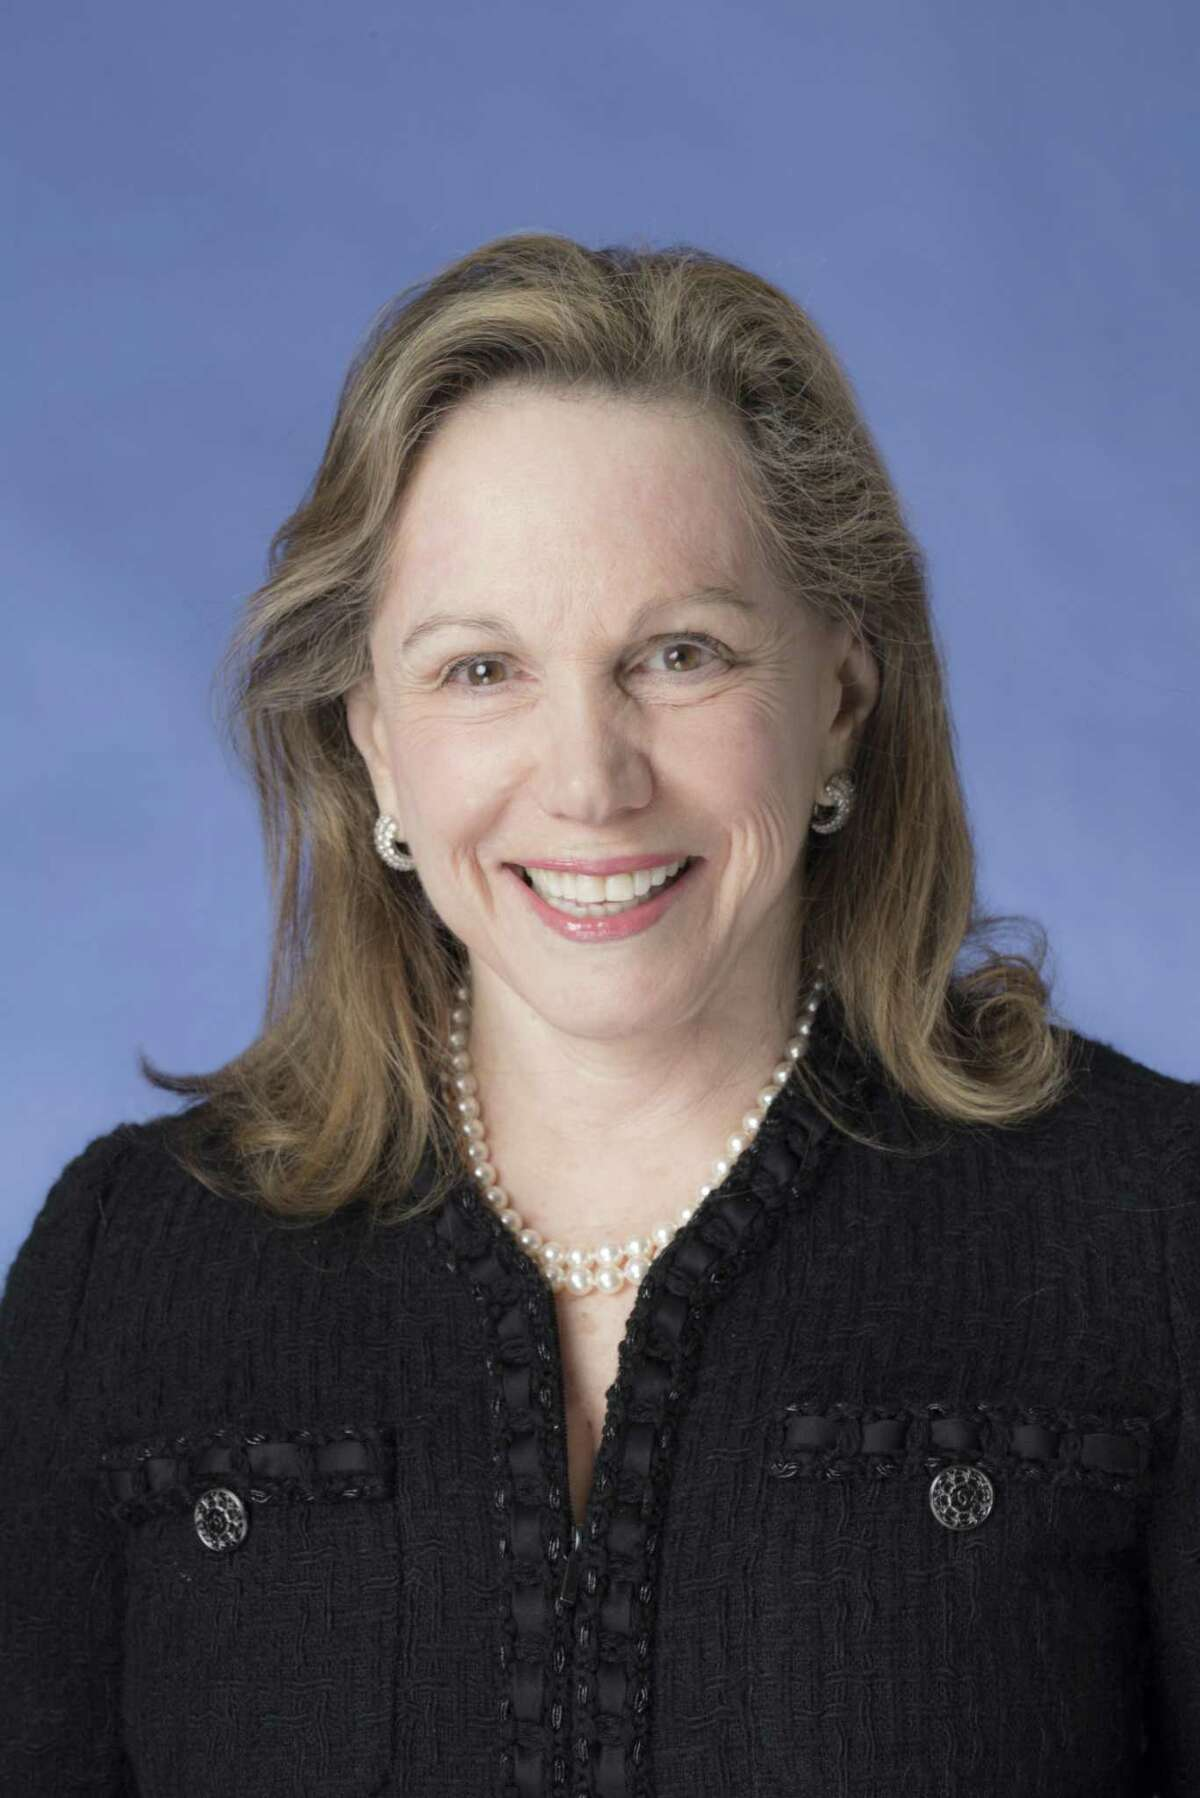 Jenne Britell is the chairwoman of the board of directors of Stamford-based United Rentals.